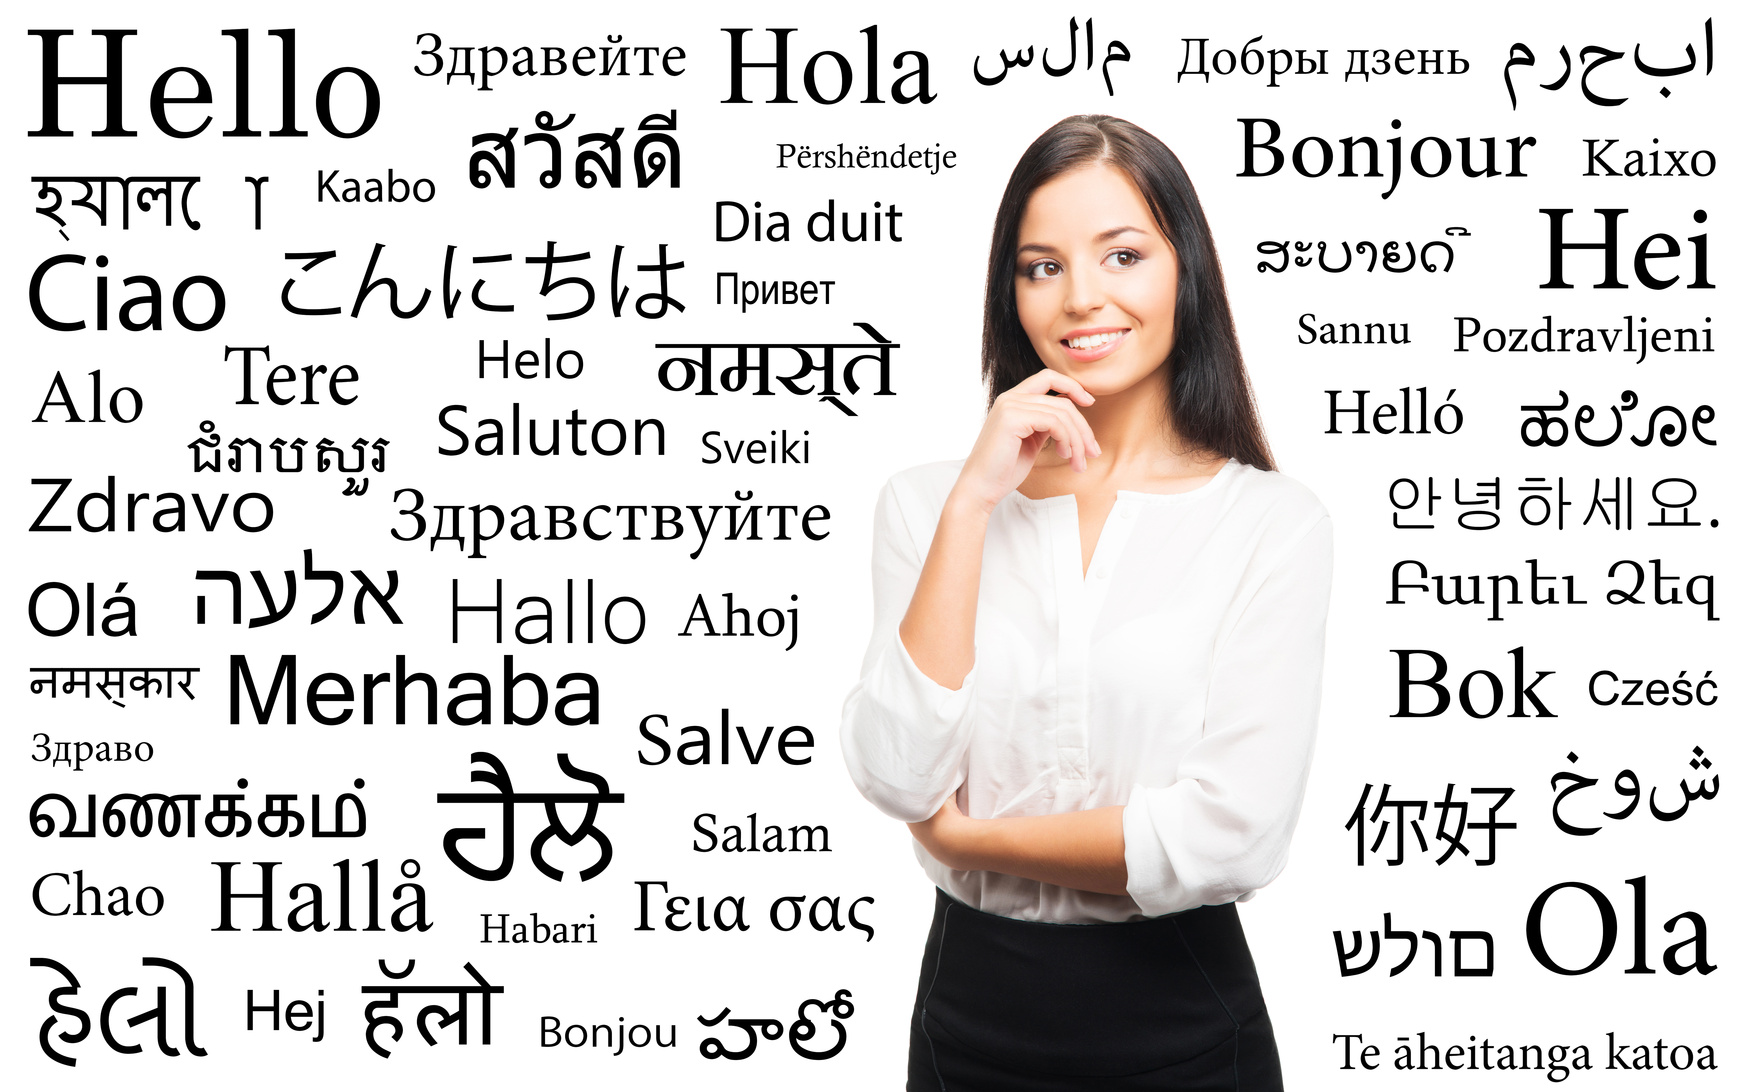 How to find a professional translator in translation market